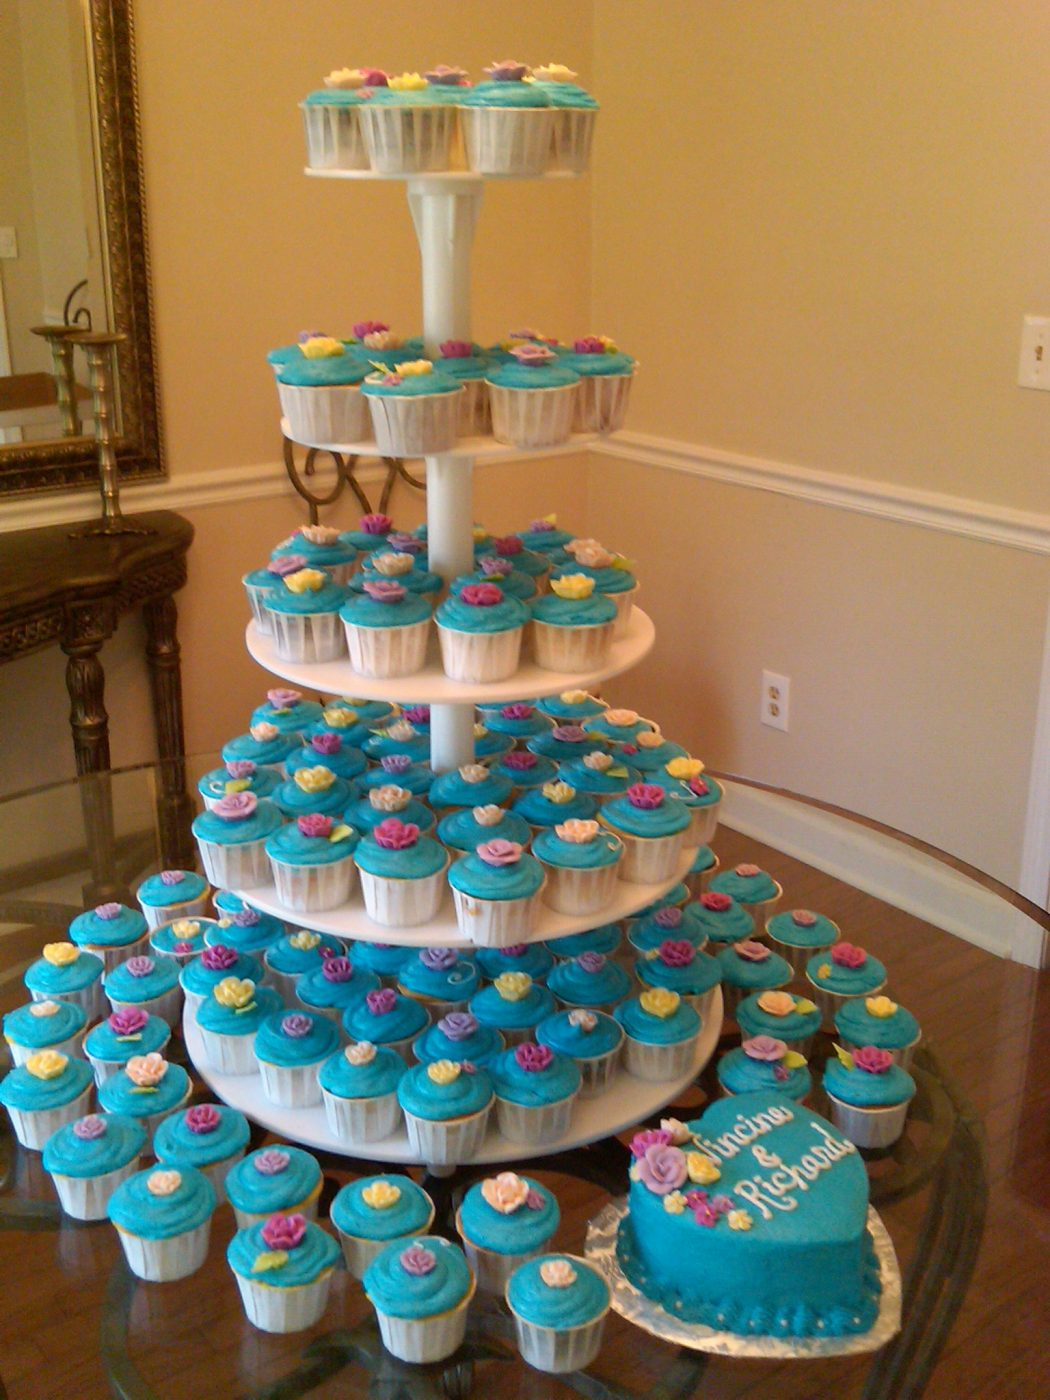 wedding-cake-and-cupcakes Cupcakes Are So Easy To Be Made At Home